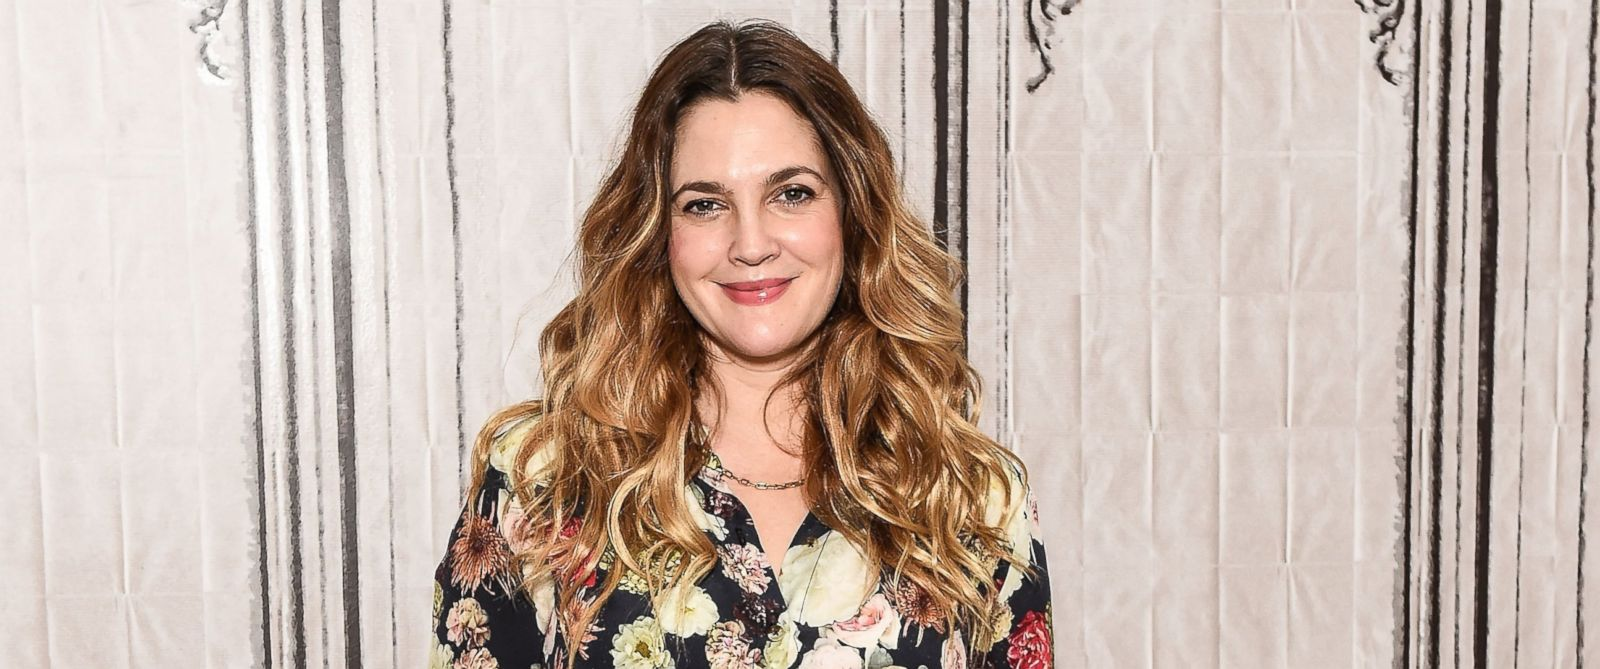 PHOTO: Drew Barrymore attends AOL Build to discuss her new book Wildflower at AOL Studios on Dec. 17, 2015 in New York.